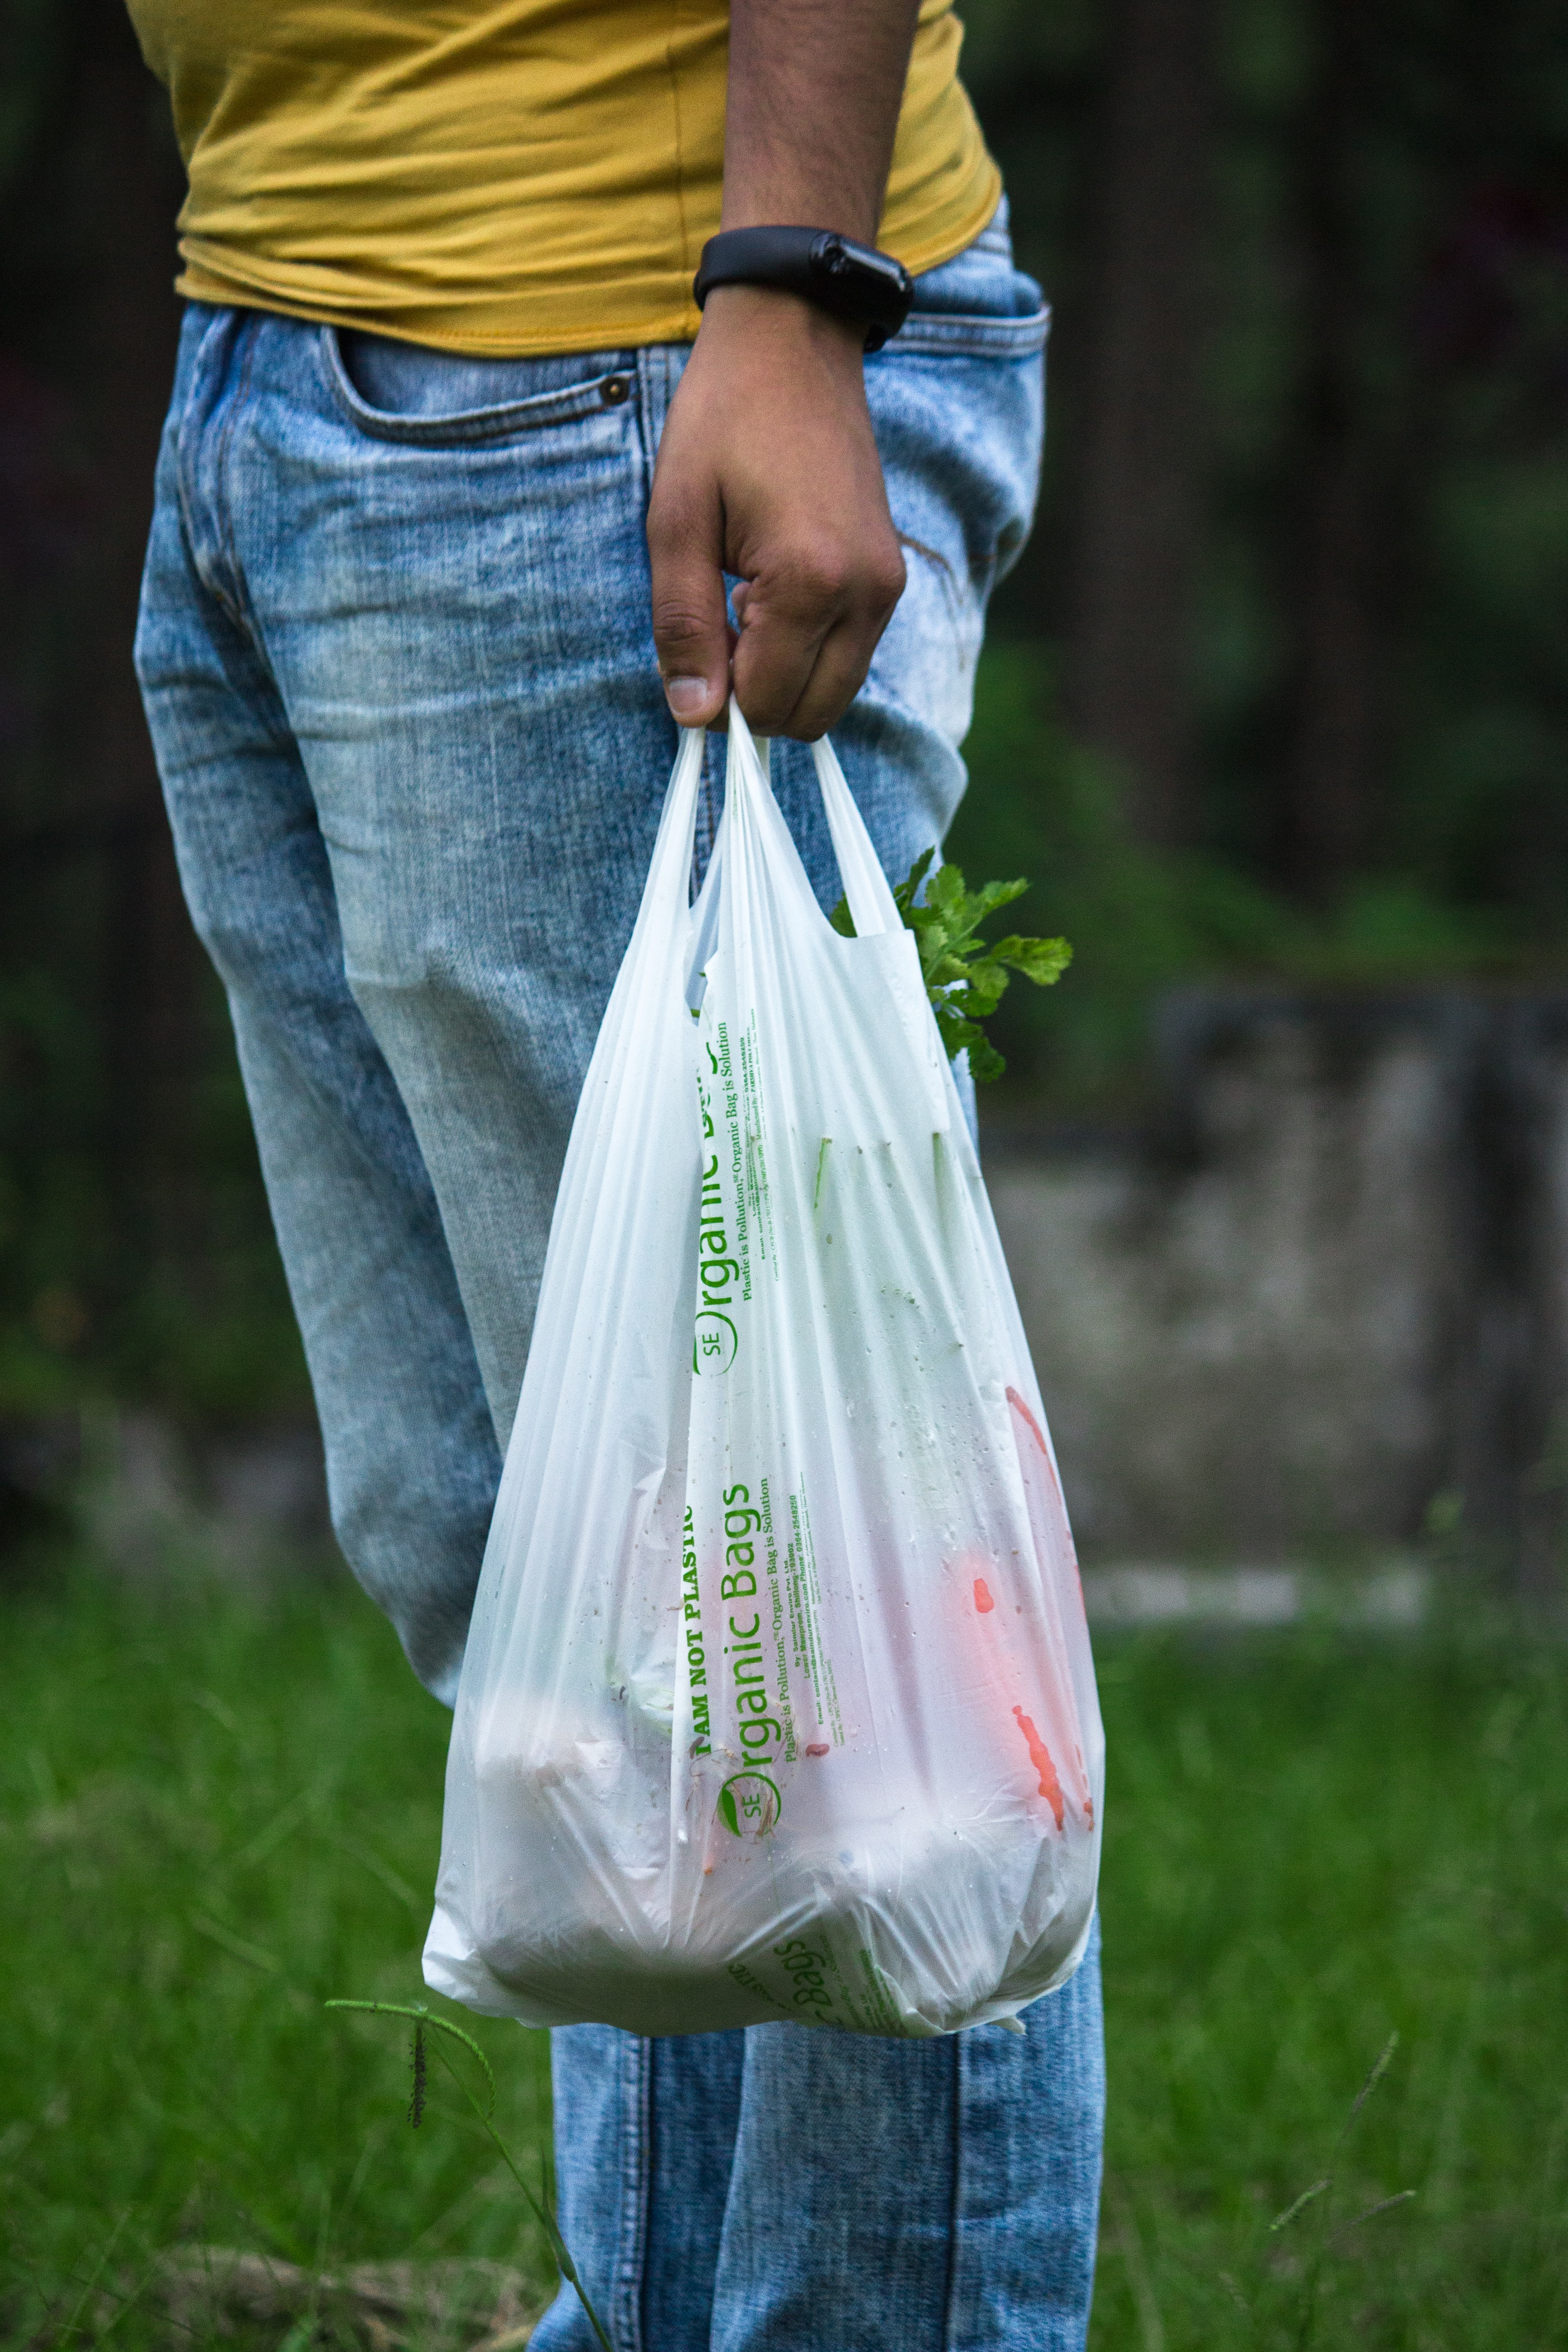 Greenpeace Sues Walmart for Misleading Product Labels